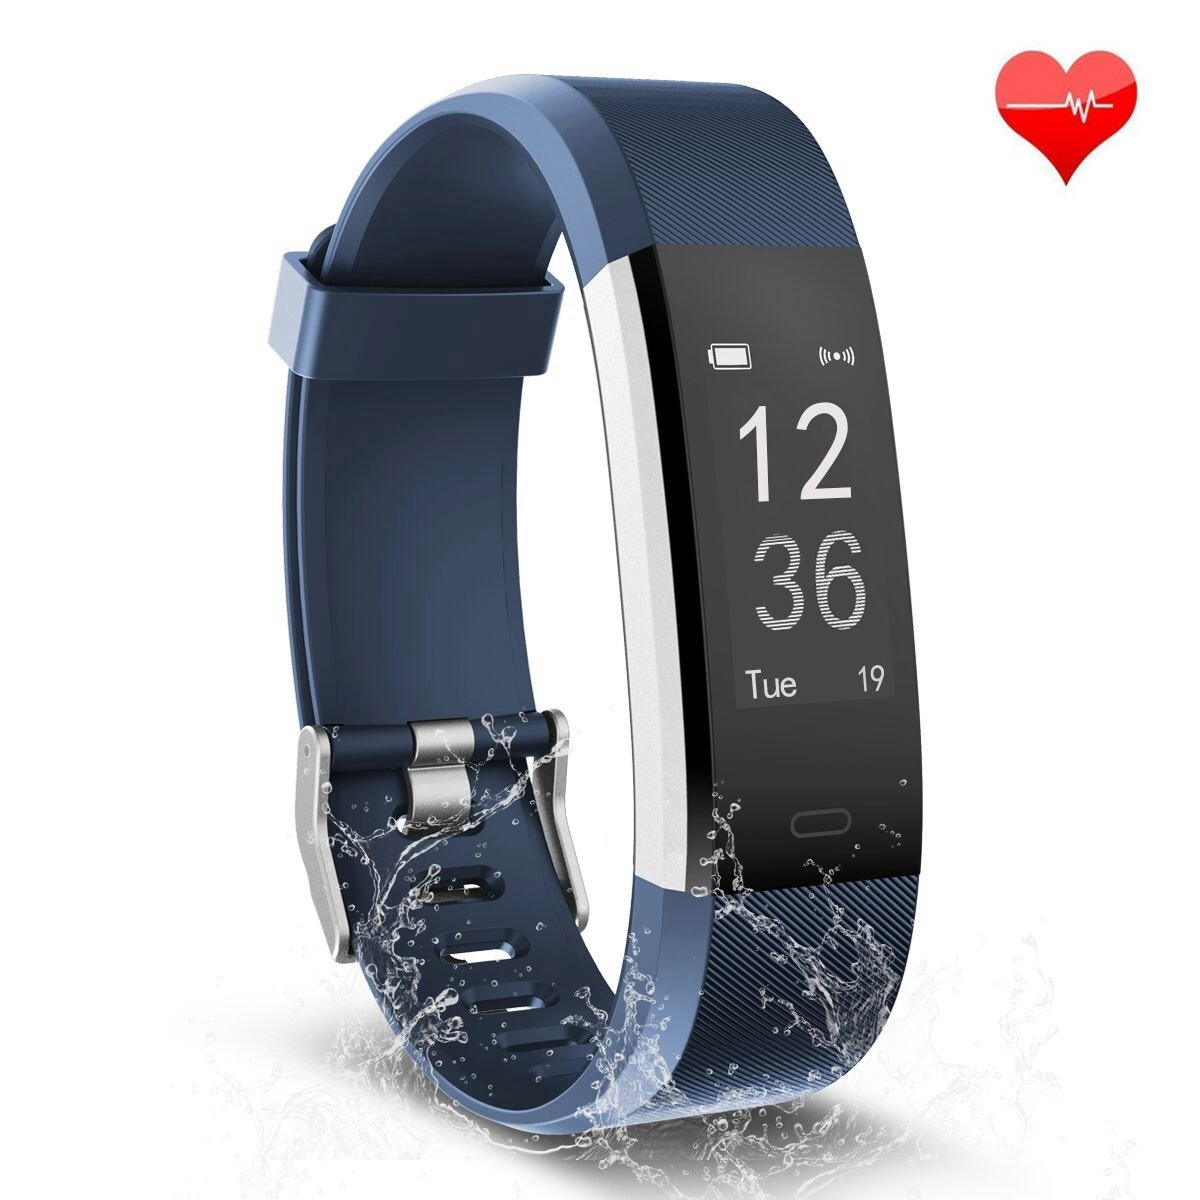 Fitness Tracker, Waterproof Activity Tracker Heart Rate Monitor Bluetooth Smart Watch Bracelet Wristband Sleep Monitor Pedometer with Replacement Strap for Android and IOS Smartphone (black-red)